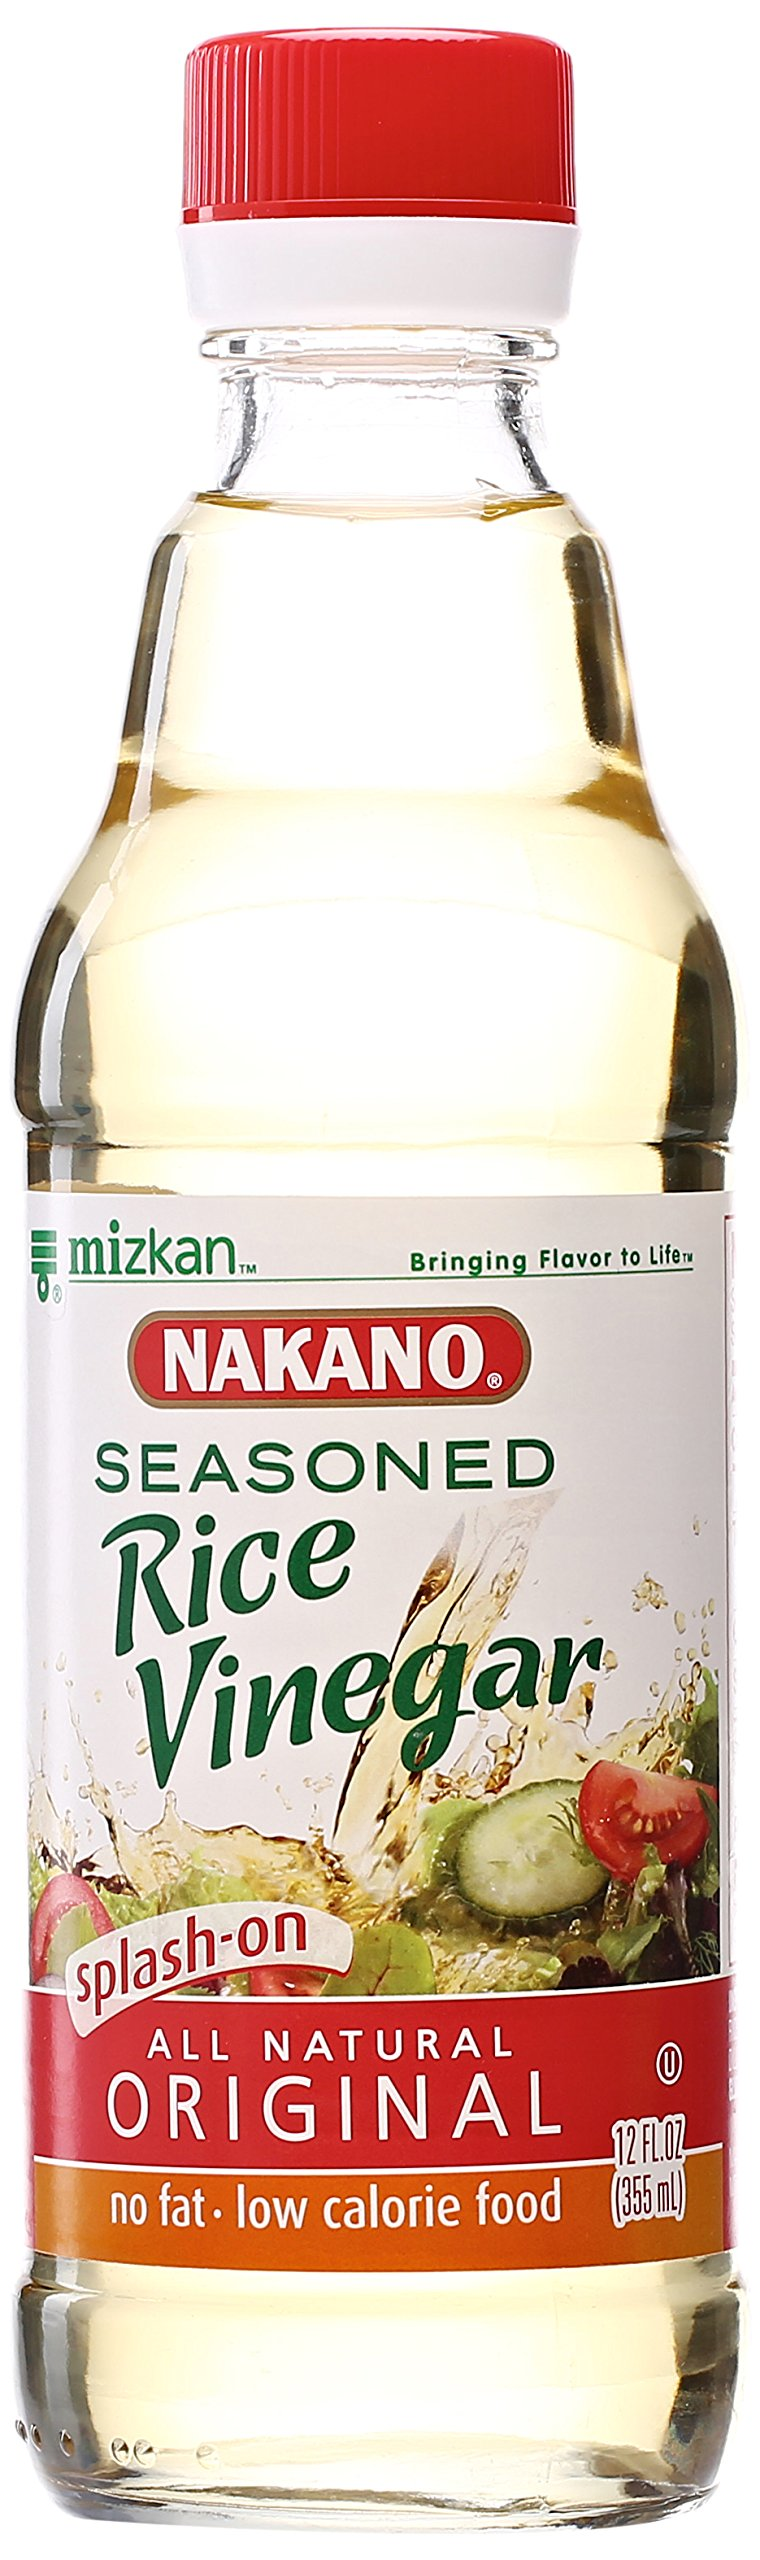 Nakano Seasoned Rice Vinegar, 12 oz.